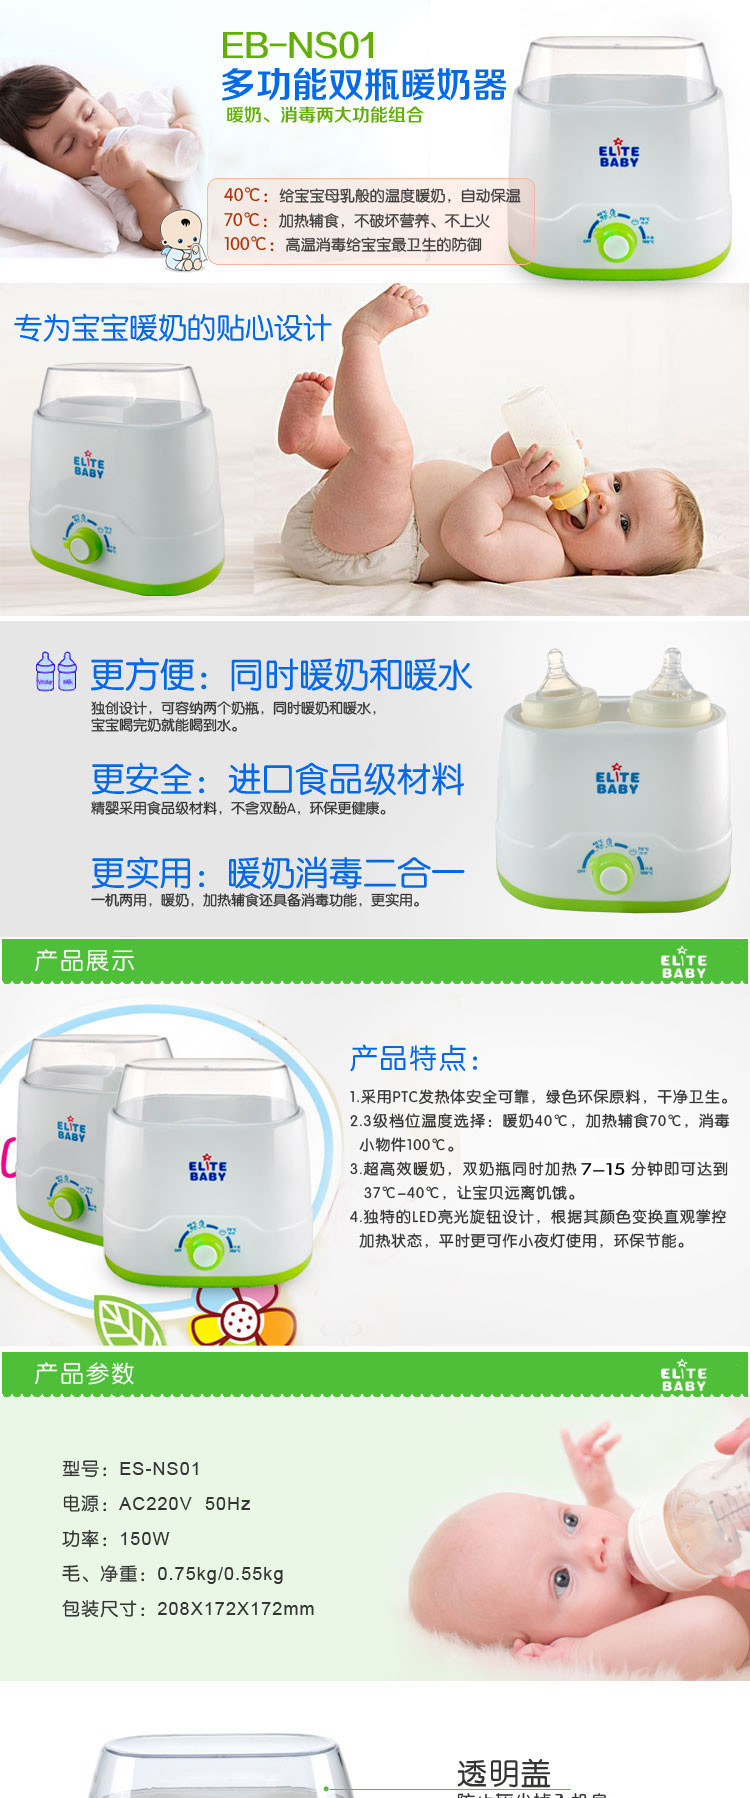 Fine a baby bottle warmer double bottles of warm milk thermostat insulation multi-function bottle warmer, disinfection